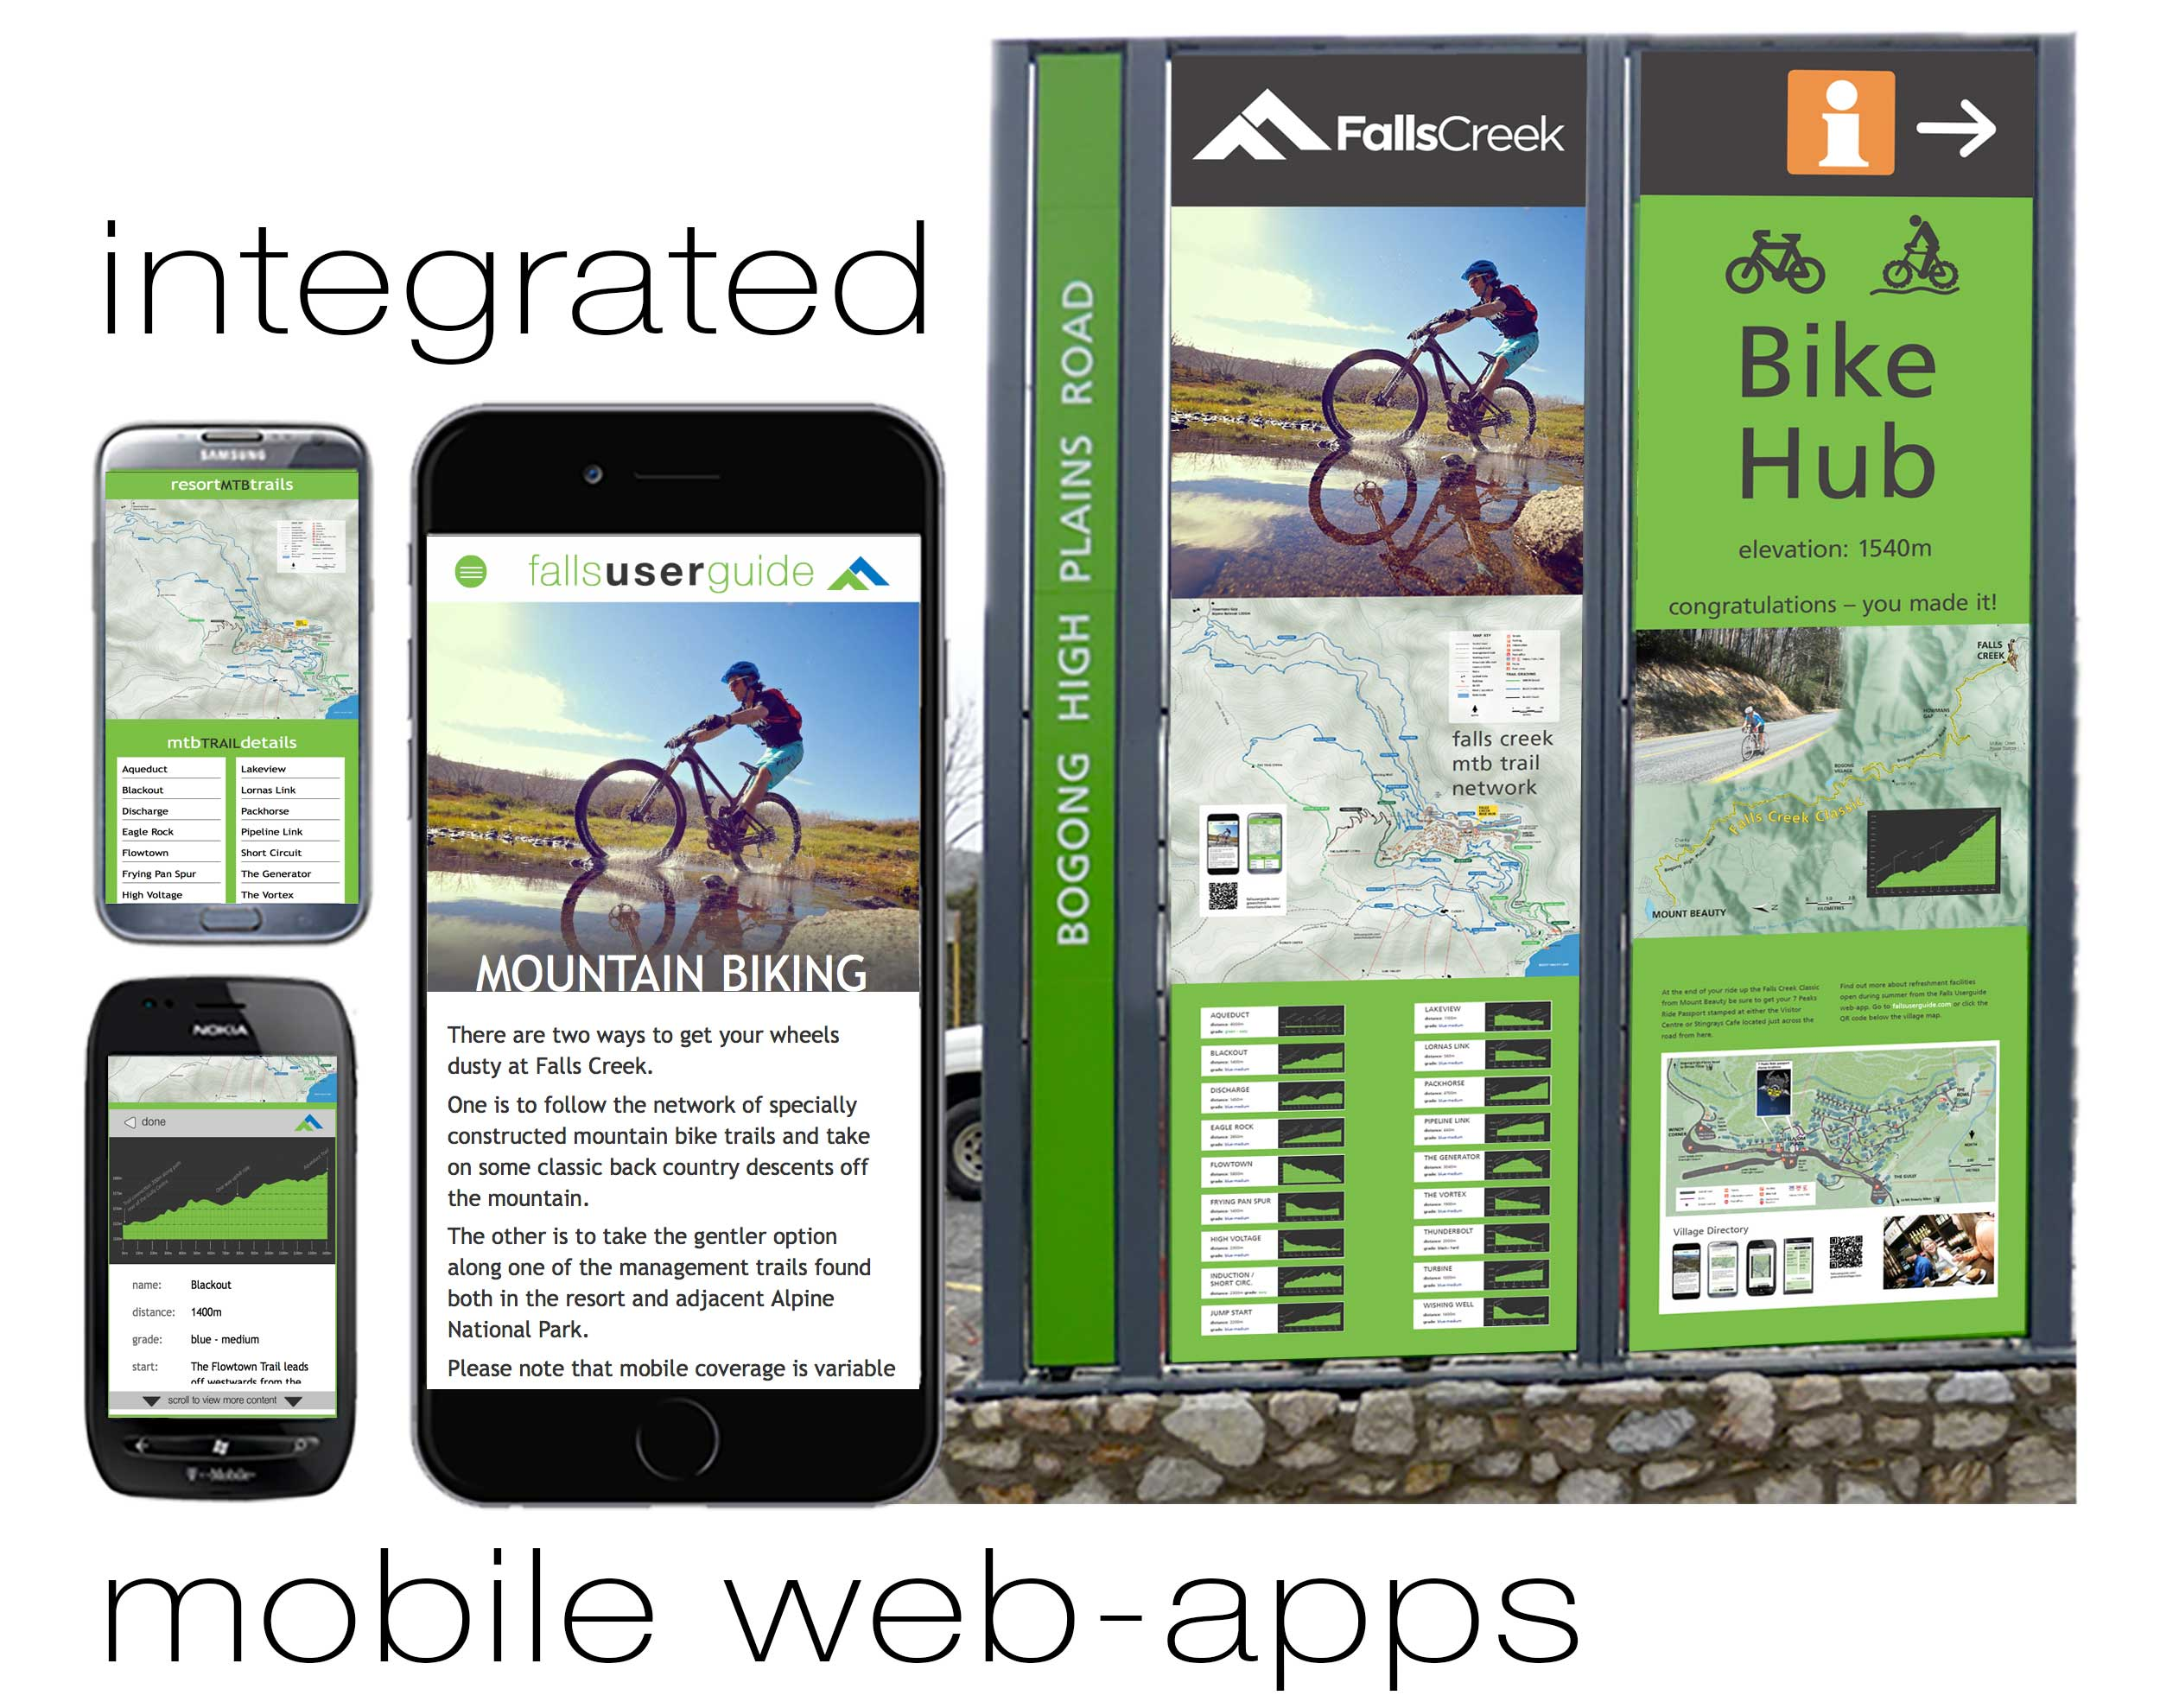 integrated mobile web apps + smartphone guides